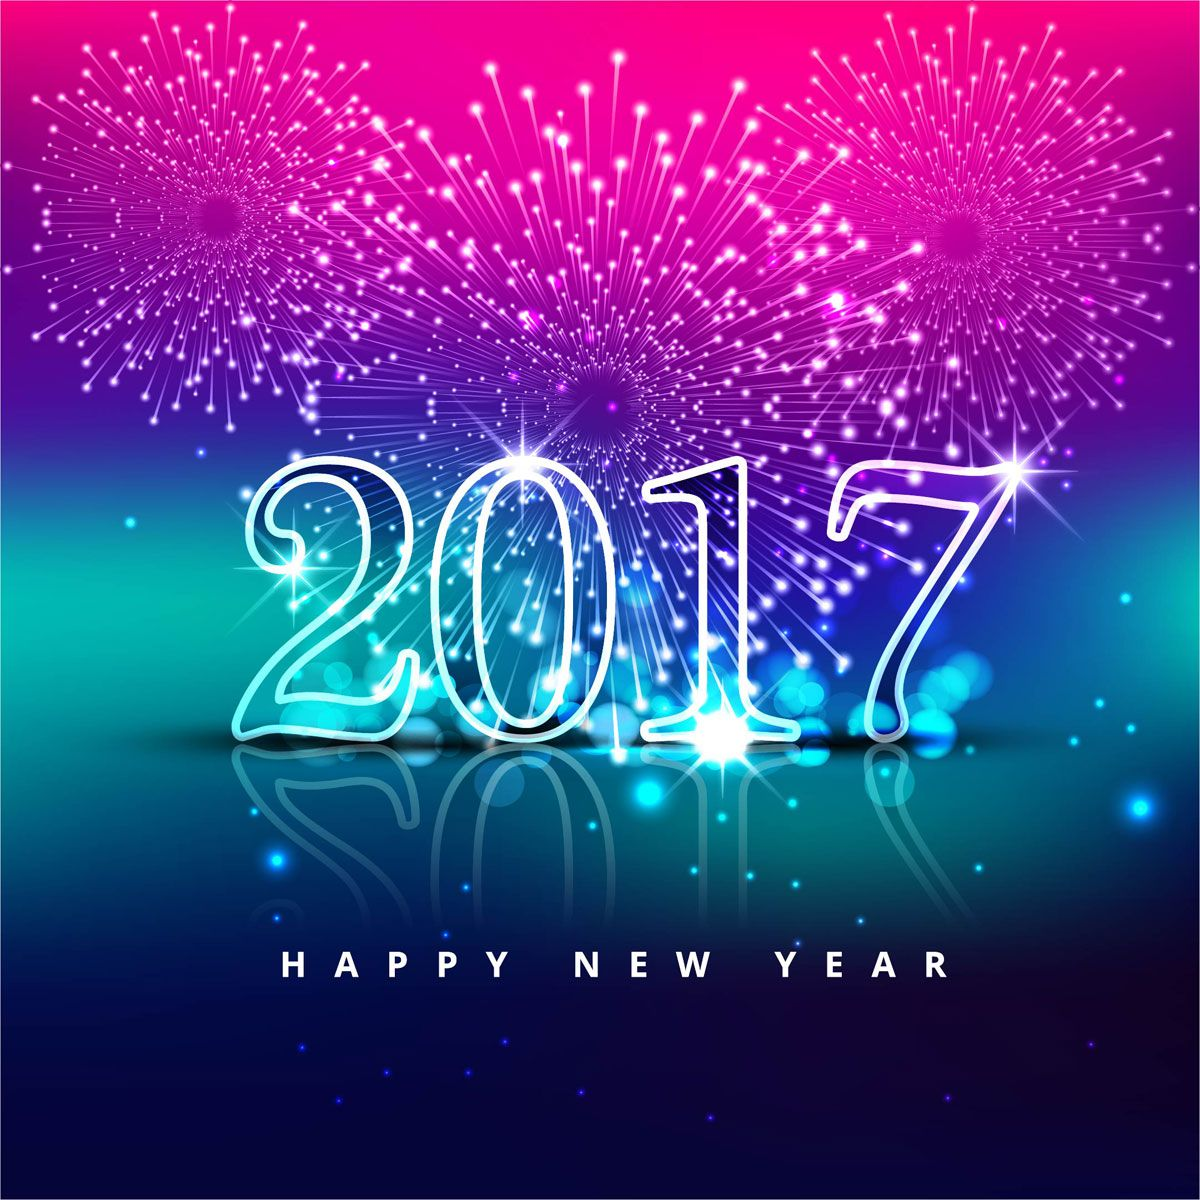 2017 Happy New Year Wallpapers For Facebook   happy birthday ...